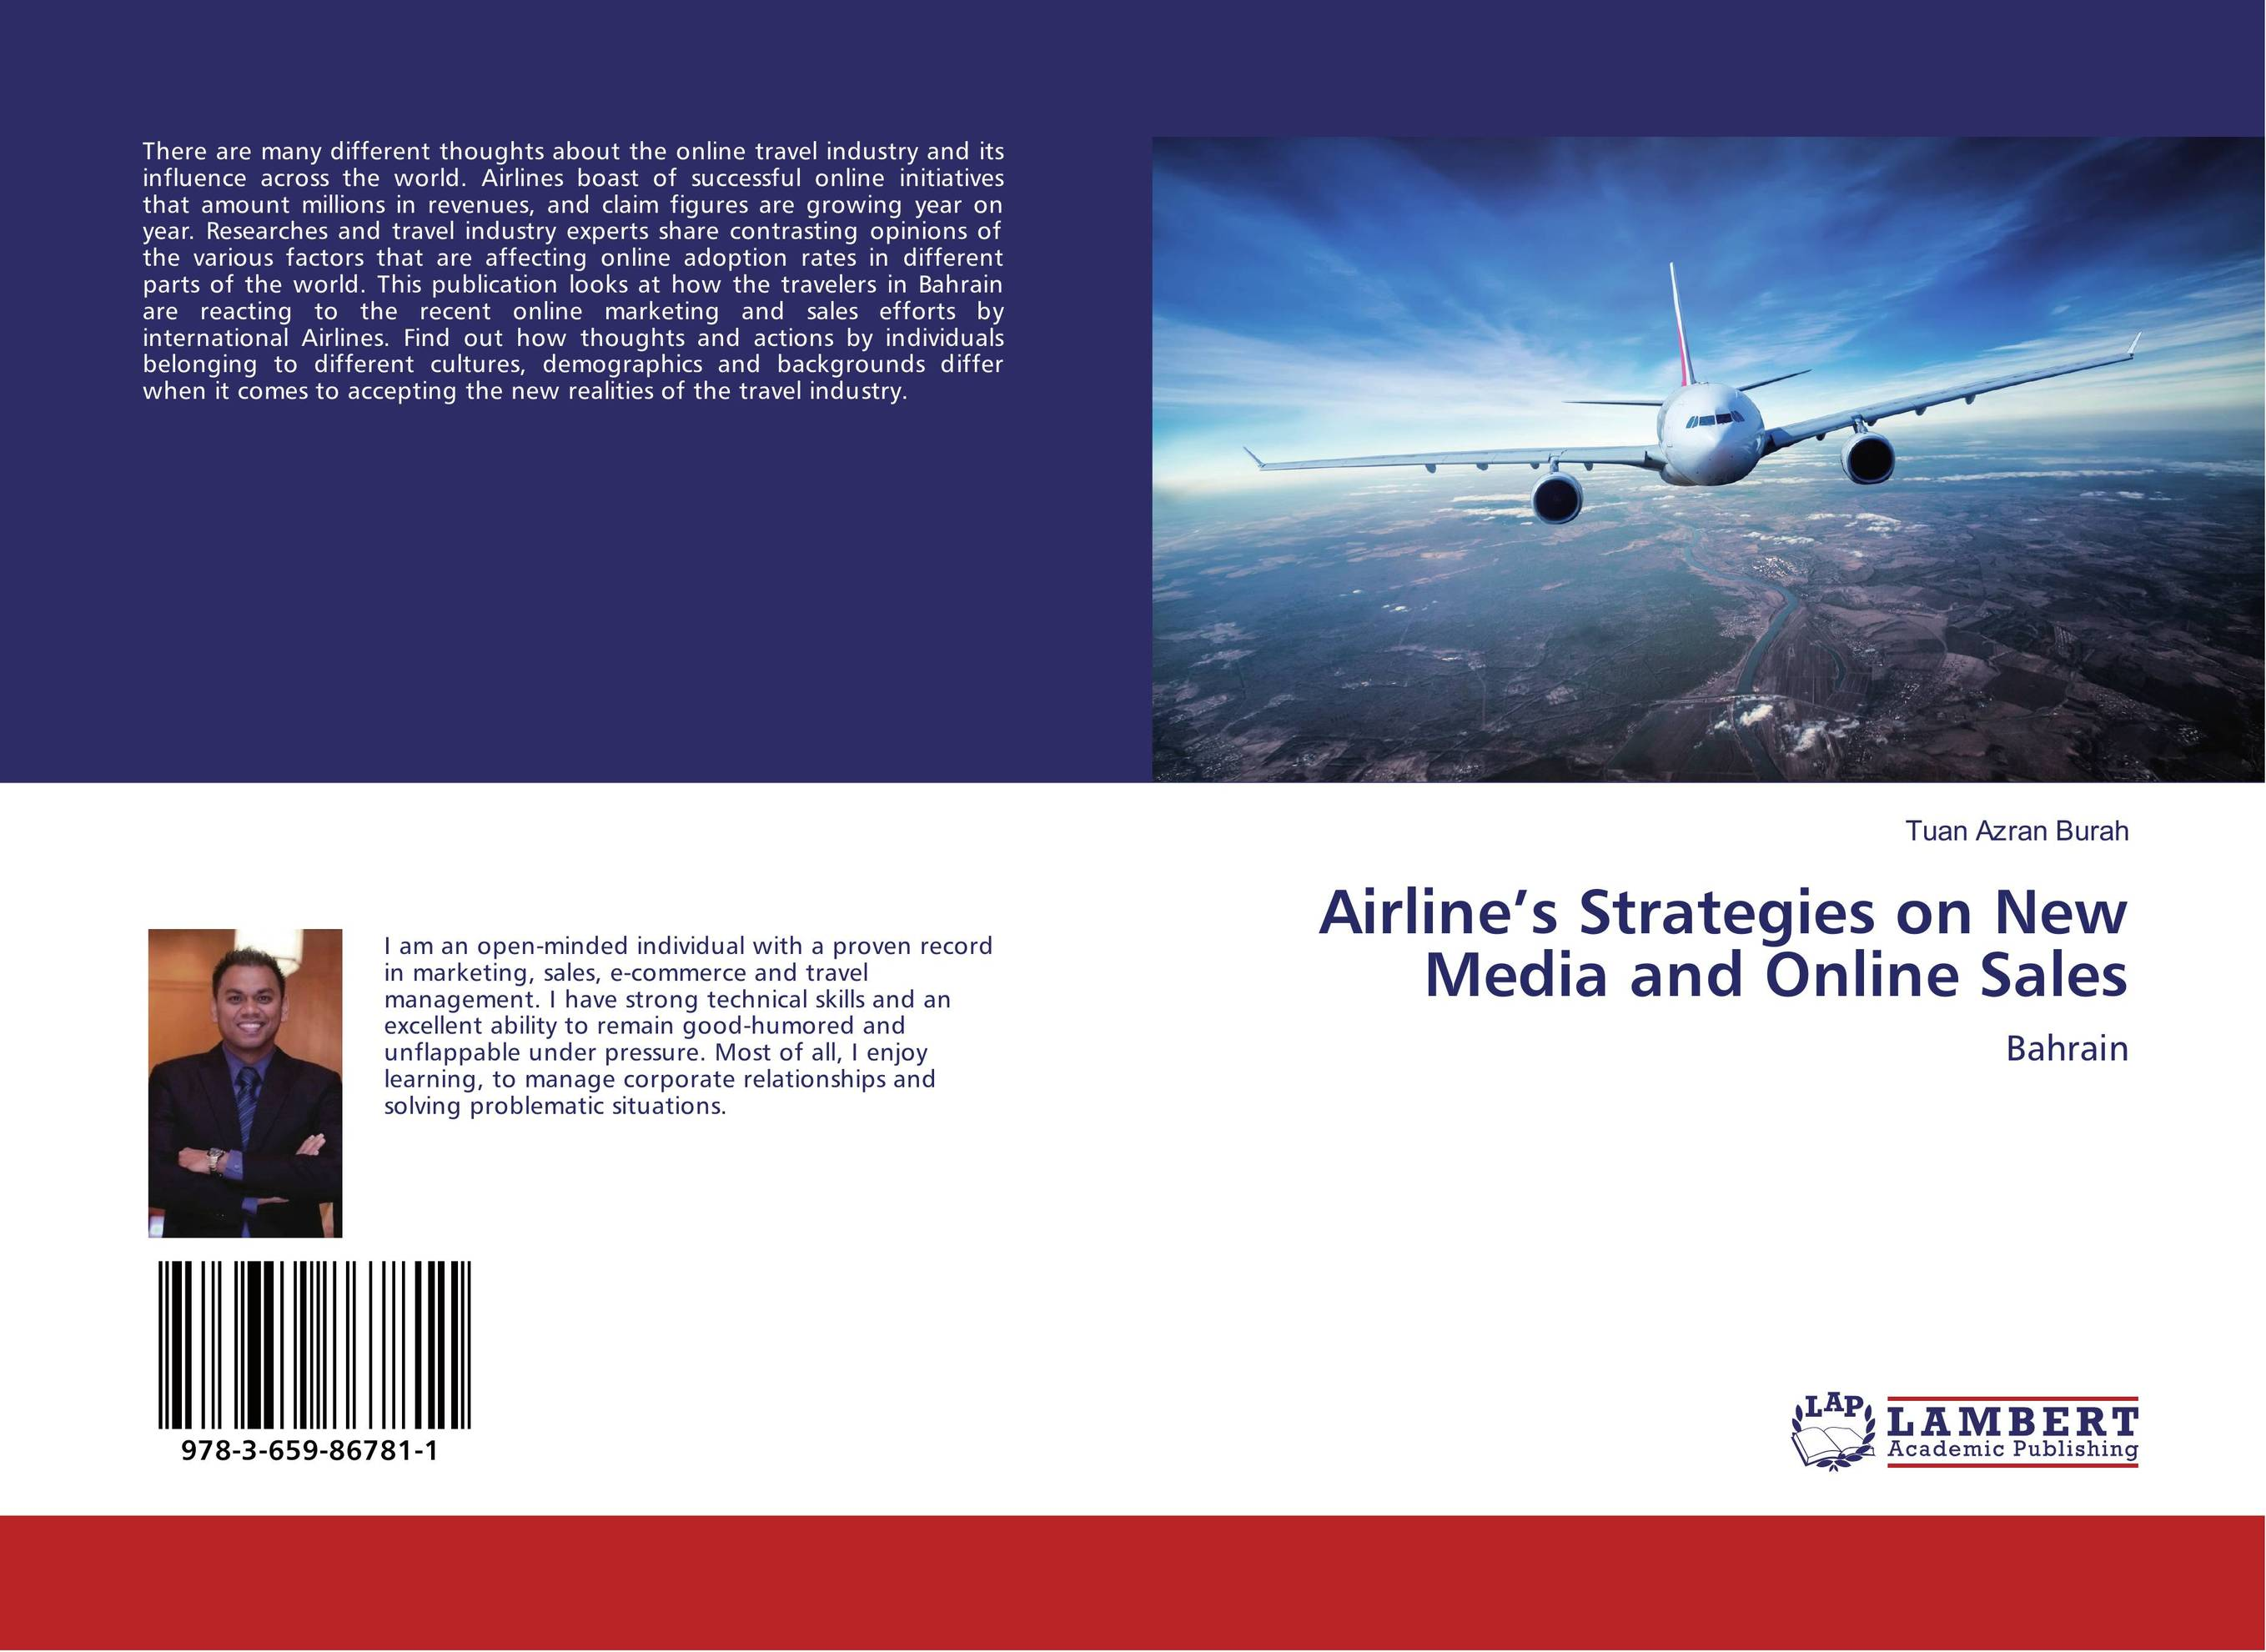 Airline's Strategies on New Media and Online Sales